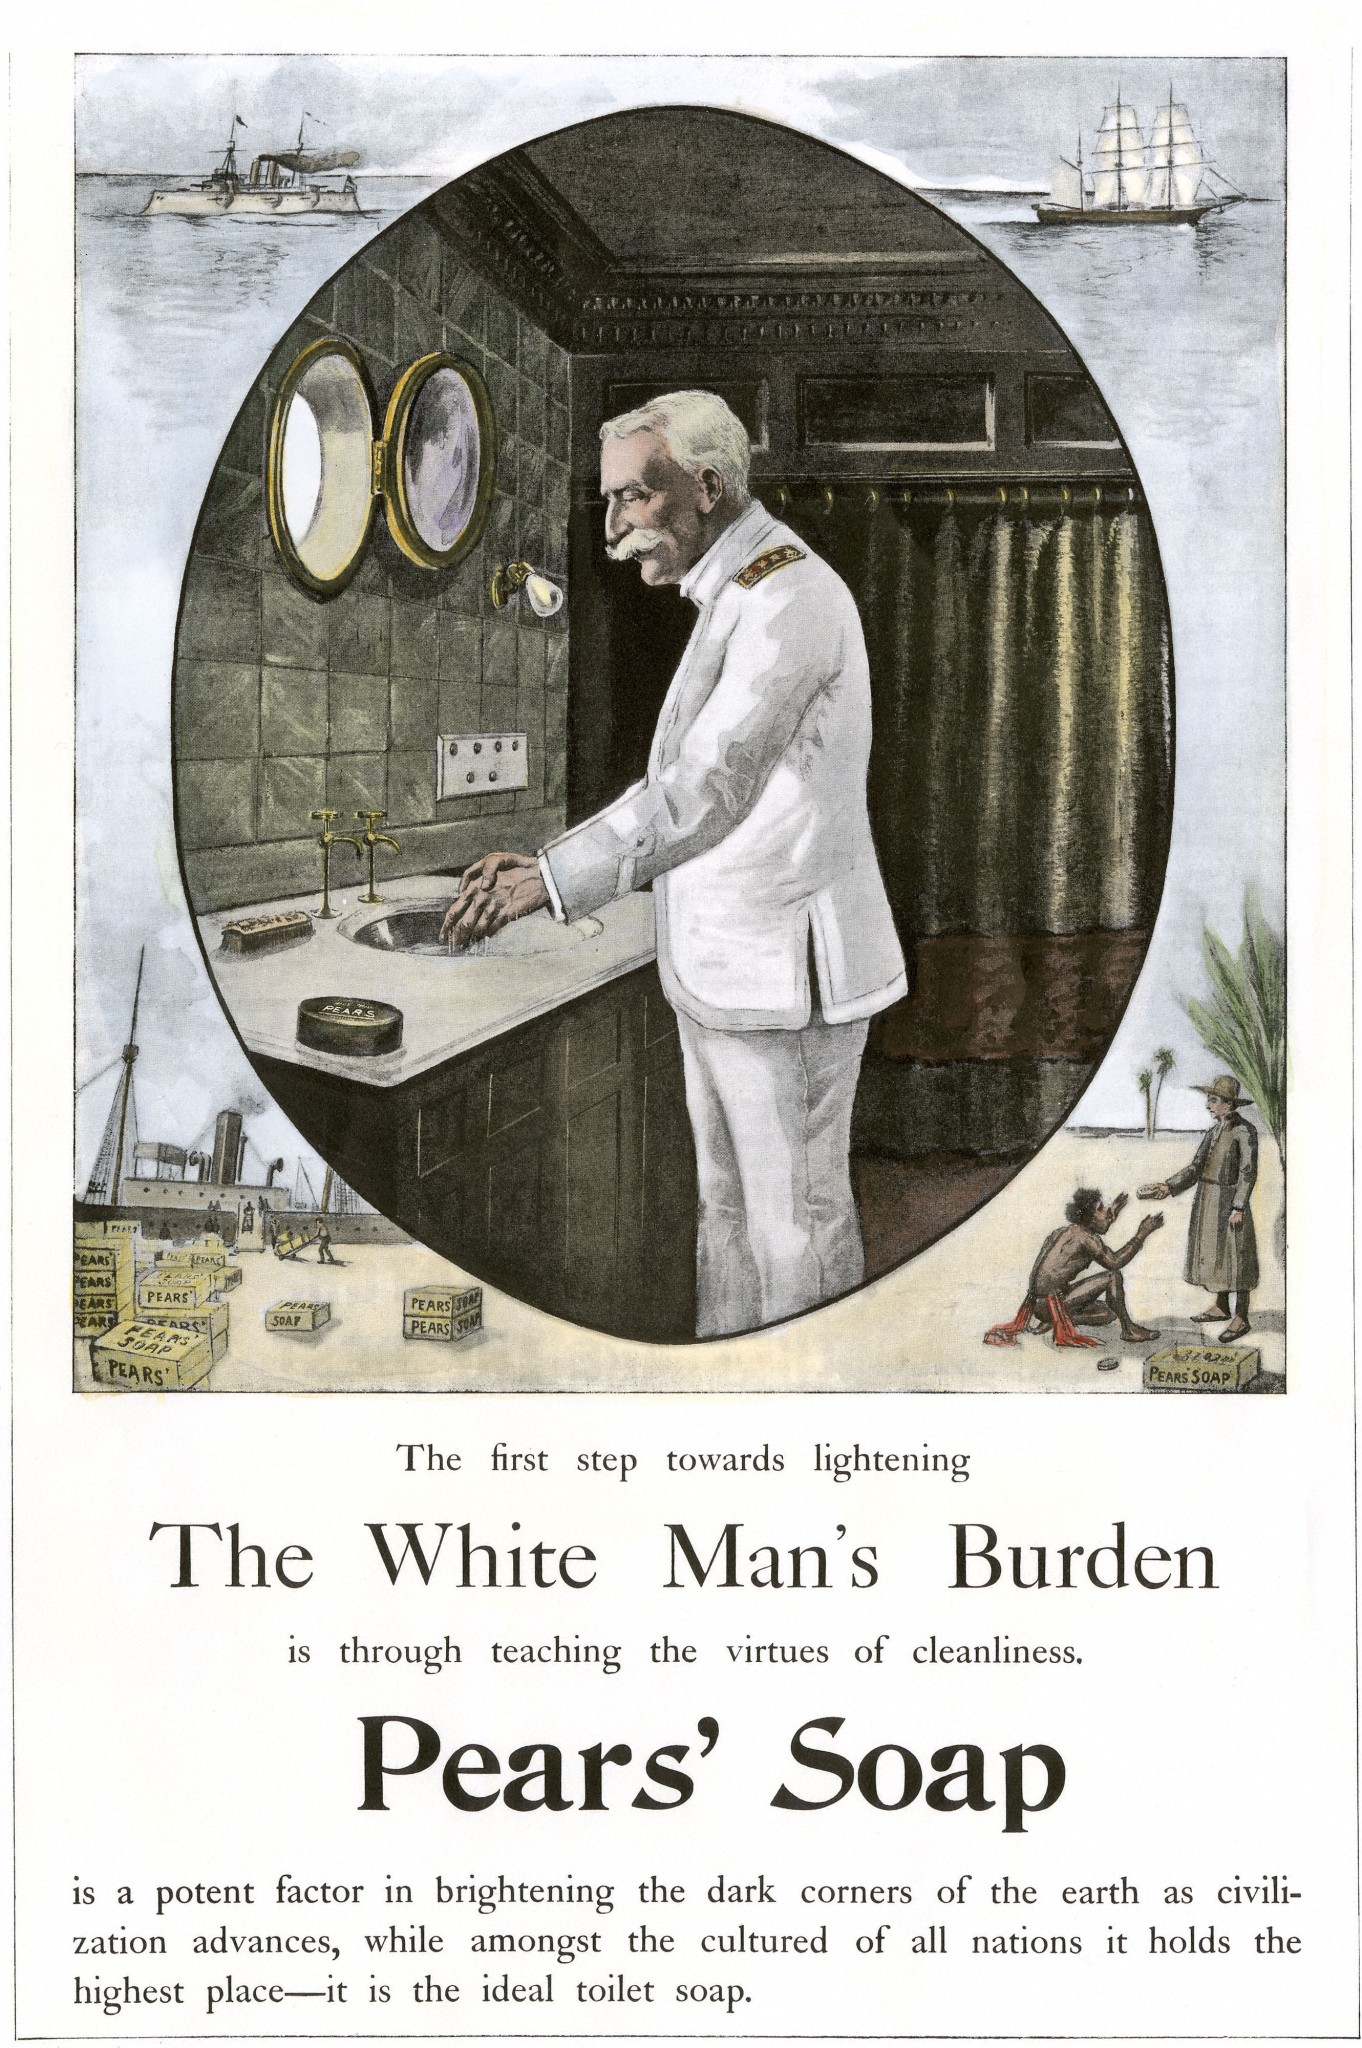 White Man Burden is to teach cleanliness described in a Pears Soap advertisement 1890s